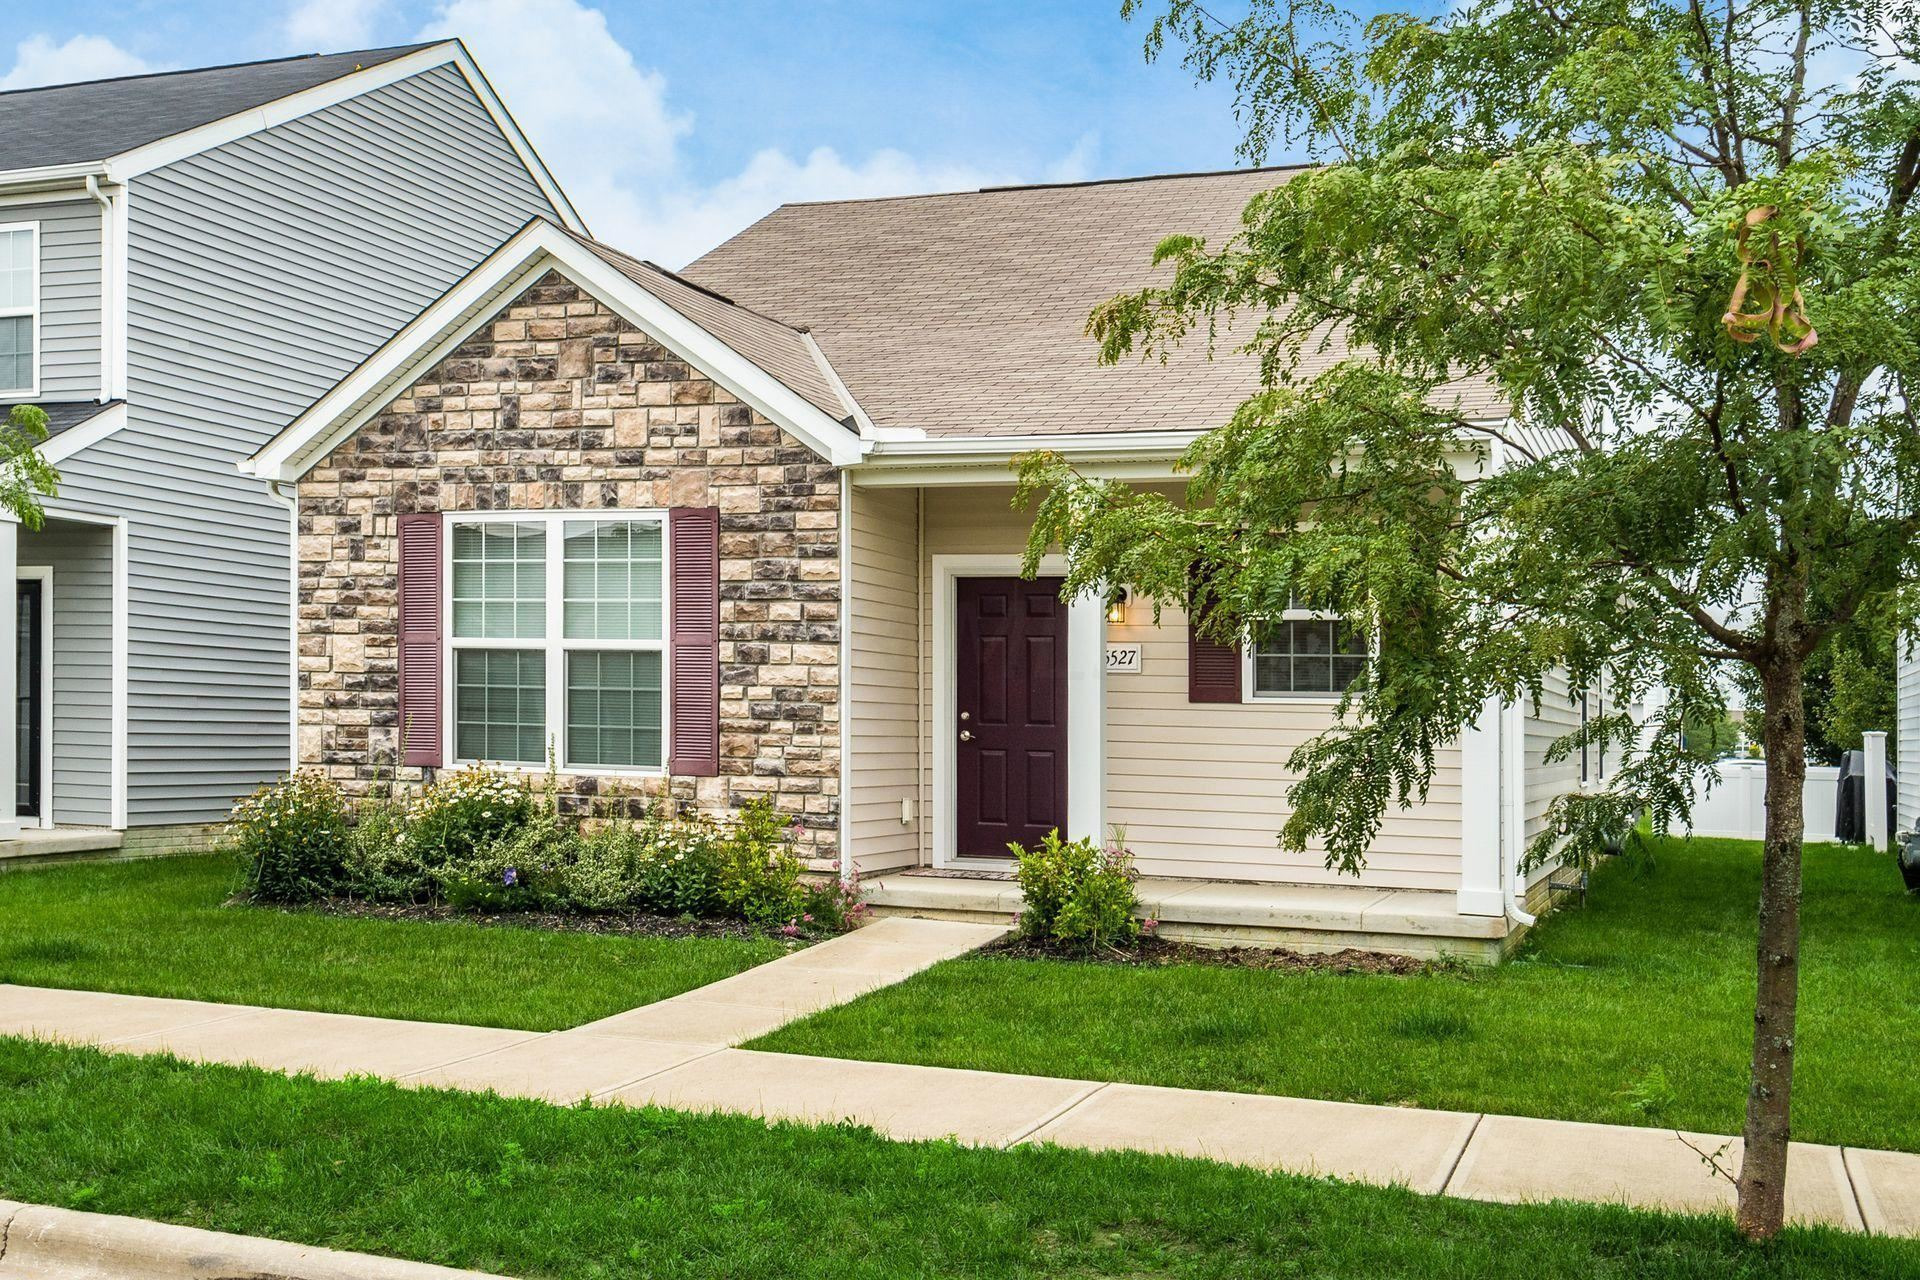 Photo of 5527 Eagle River Drive, Dublin, OH 43016 (MLS # 221027864)